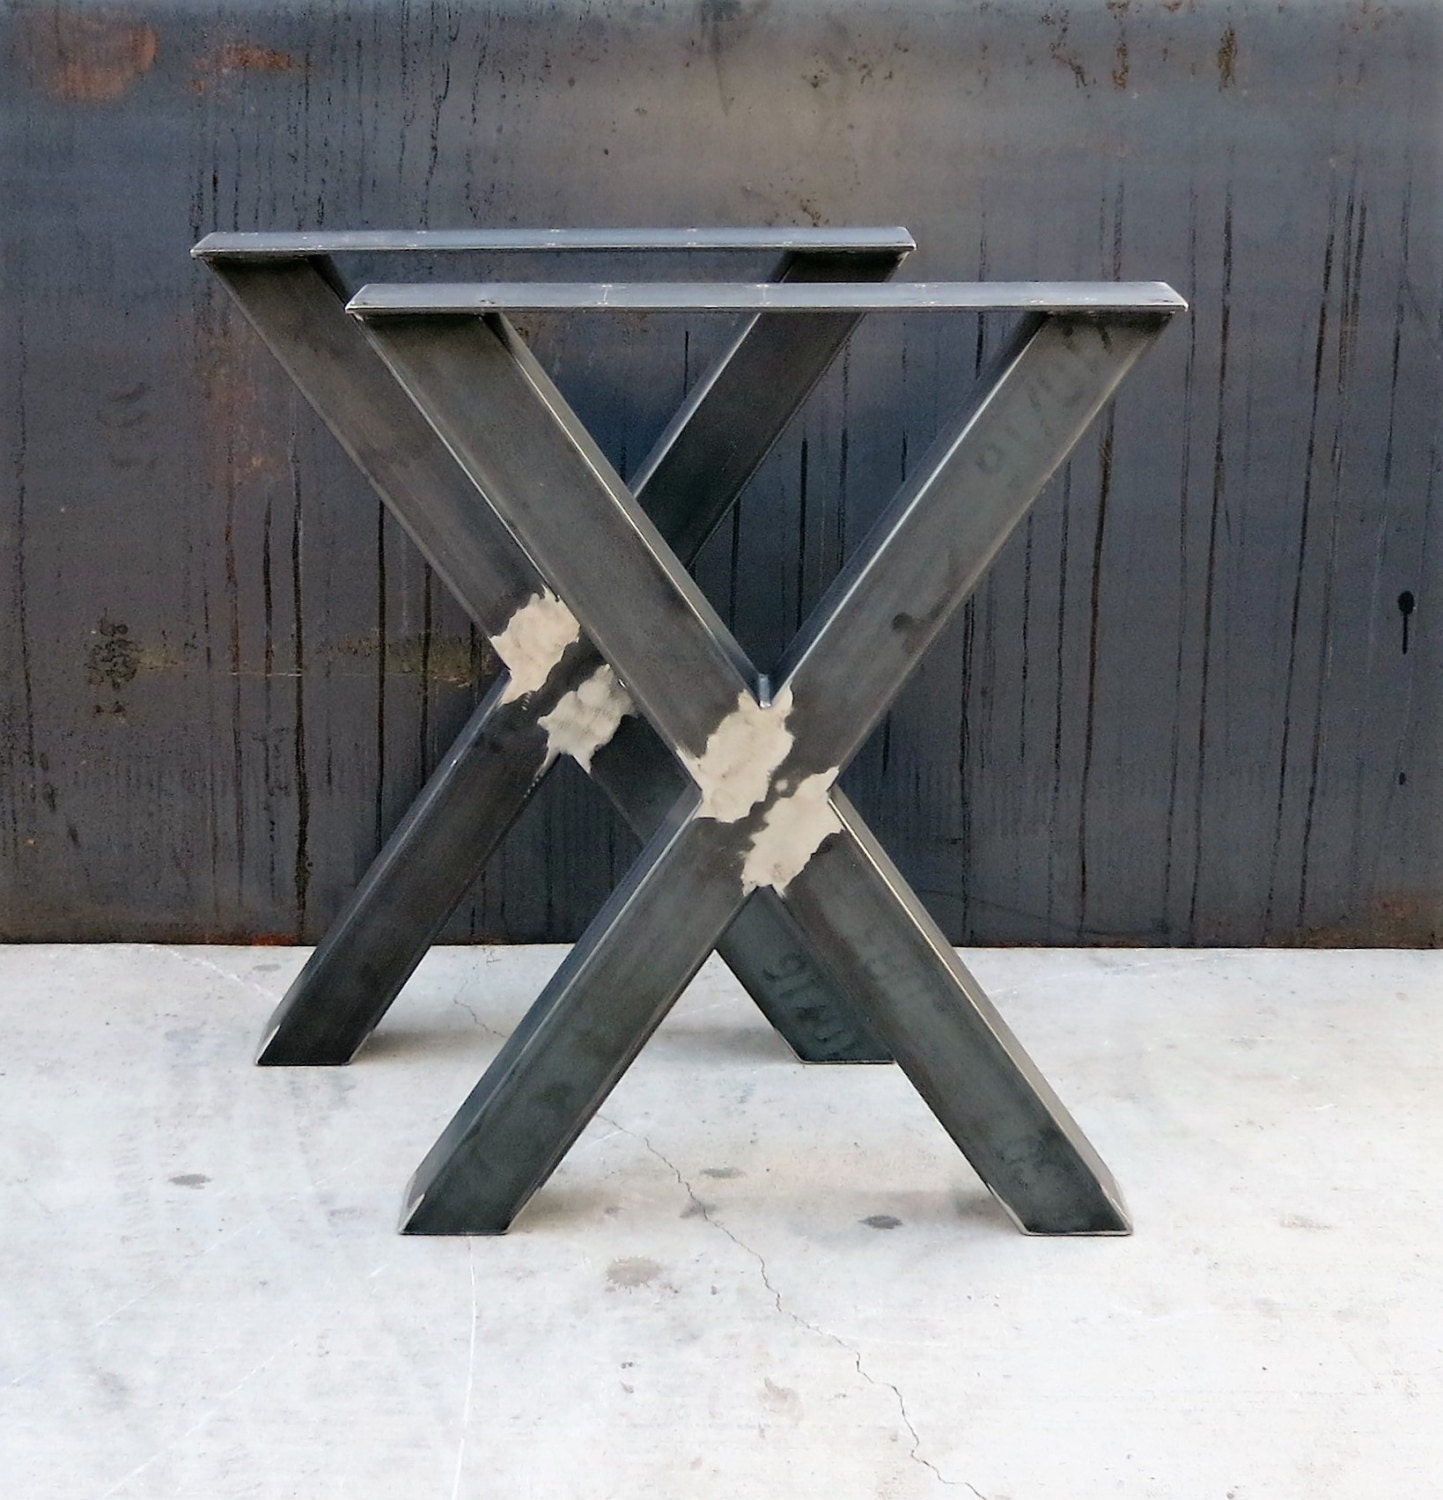 industrial x shape metal table legs 3x3. Black Bedroom Furniture Sets. Home Design Ideas